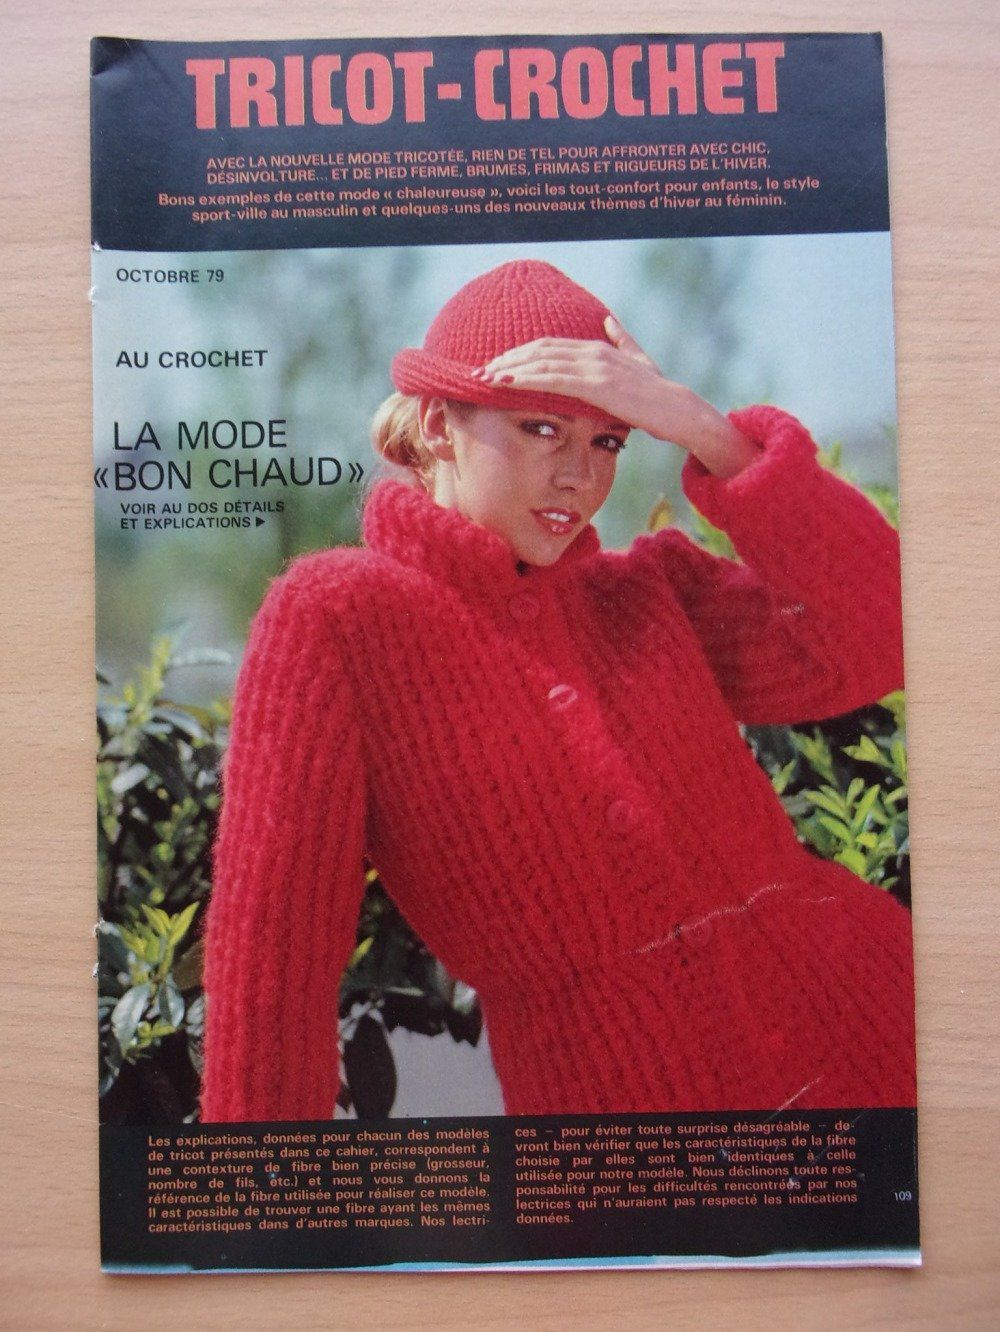 Tricots crochets 1979